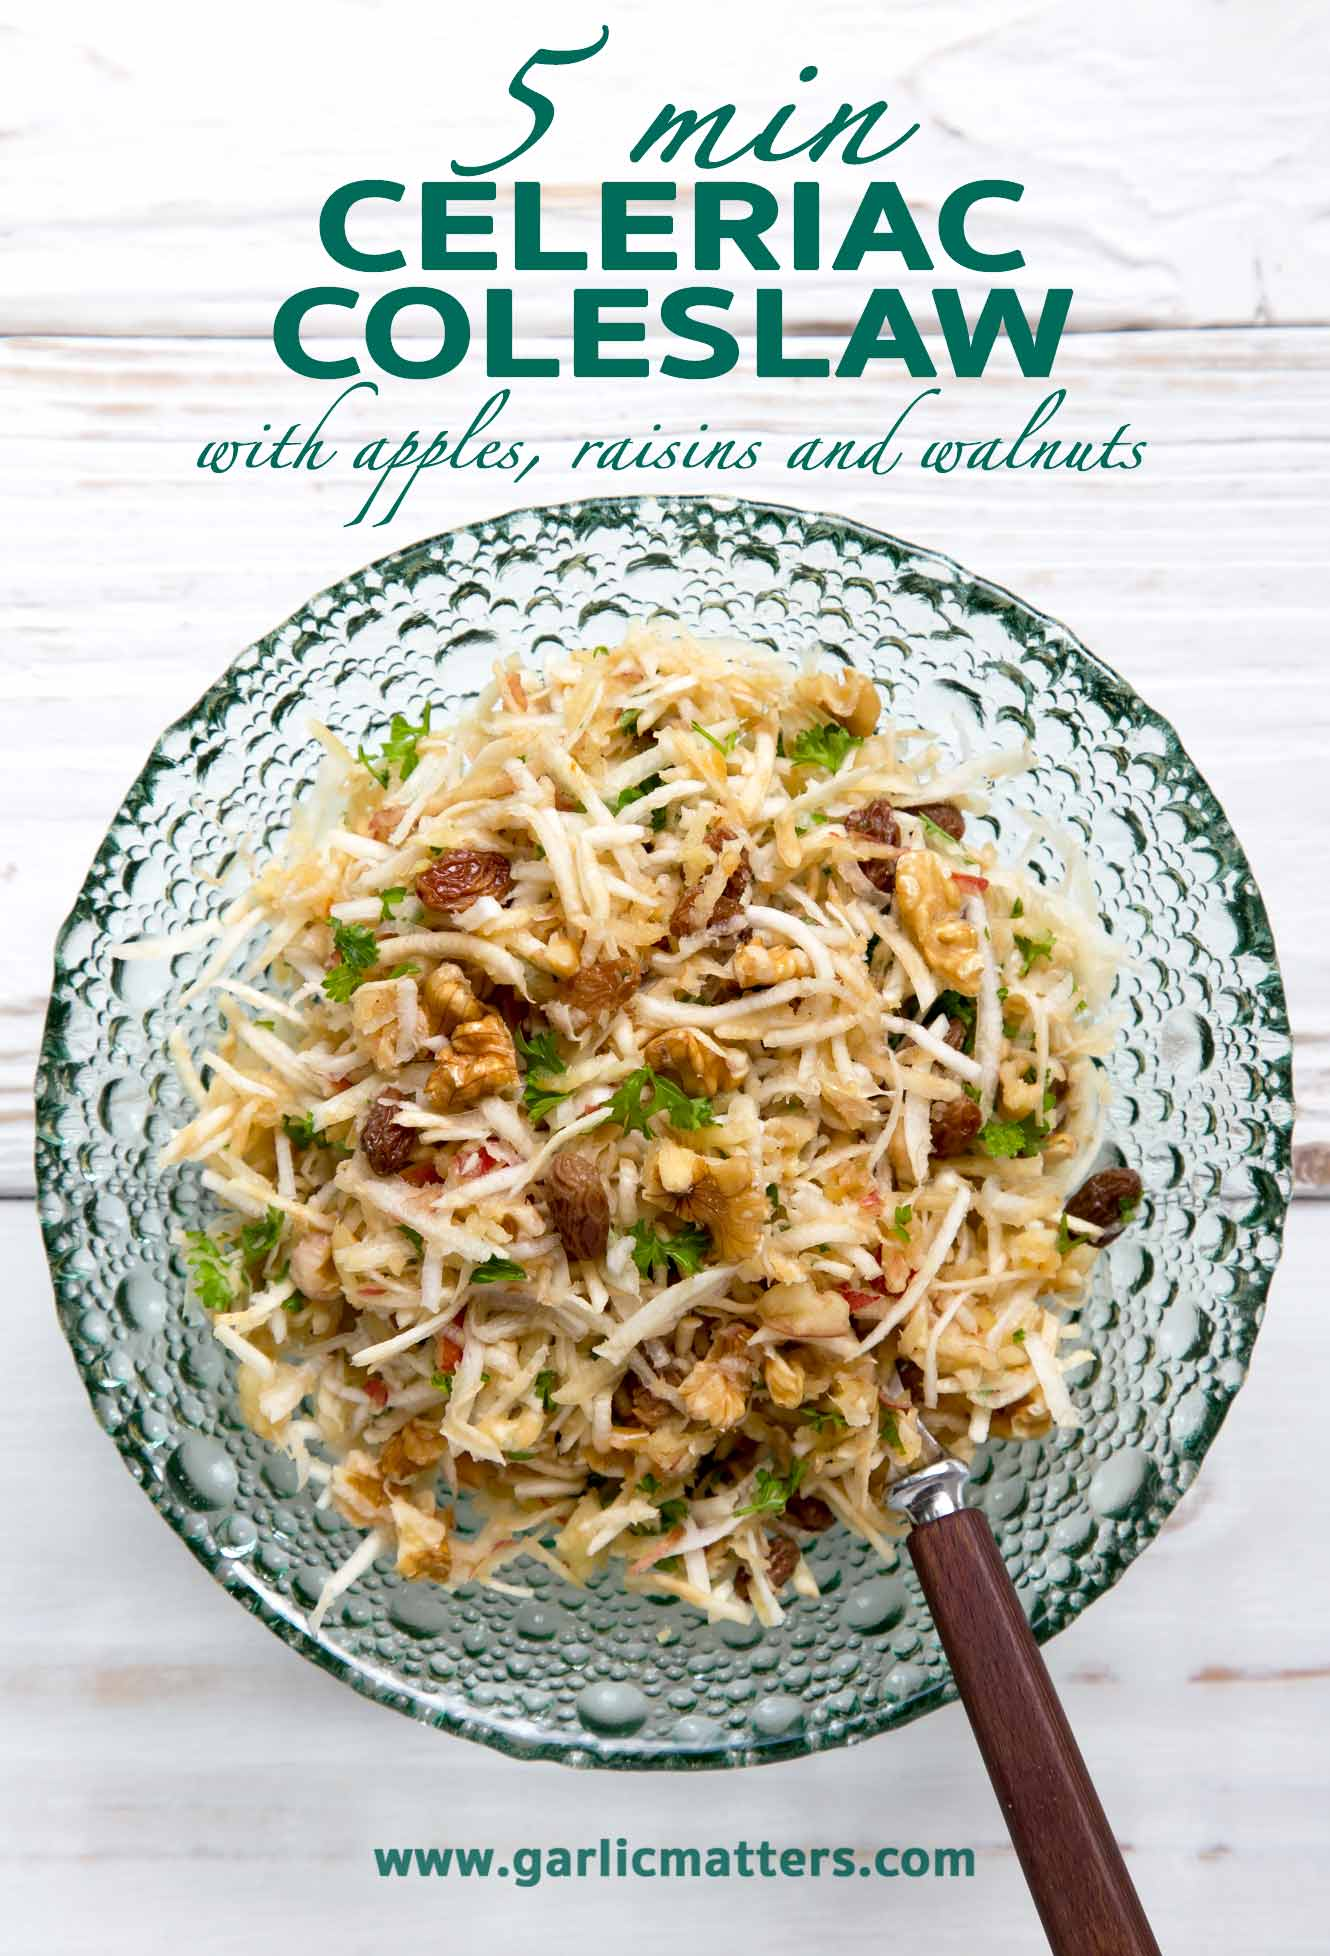 5 min Celeriac coleslaw with apple, raisins and walnuts recipe is my favourite way to eat the oddly looking veg. Vegan, healthy, delicious!